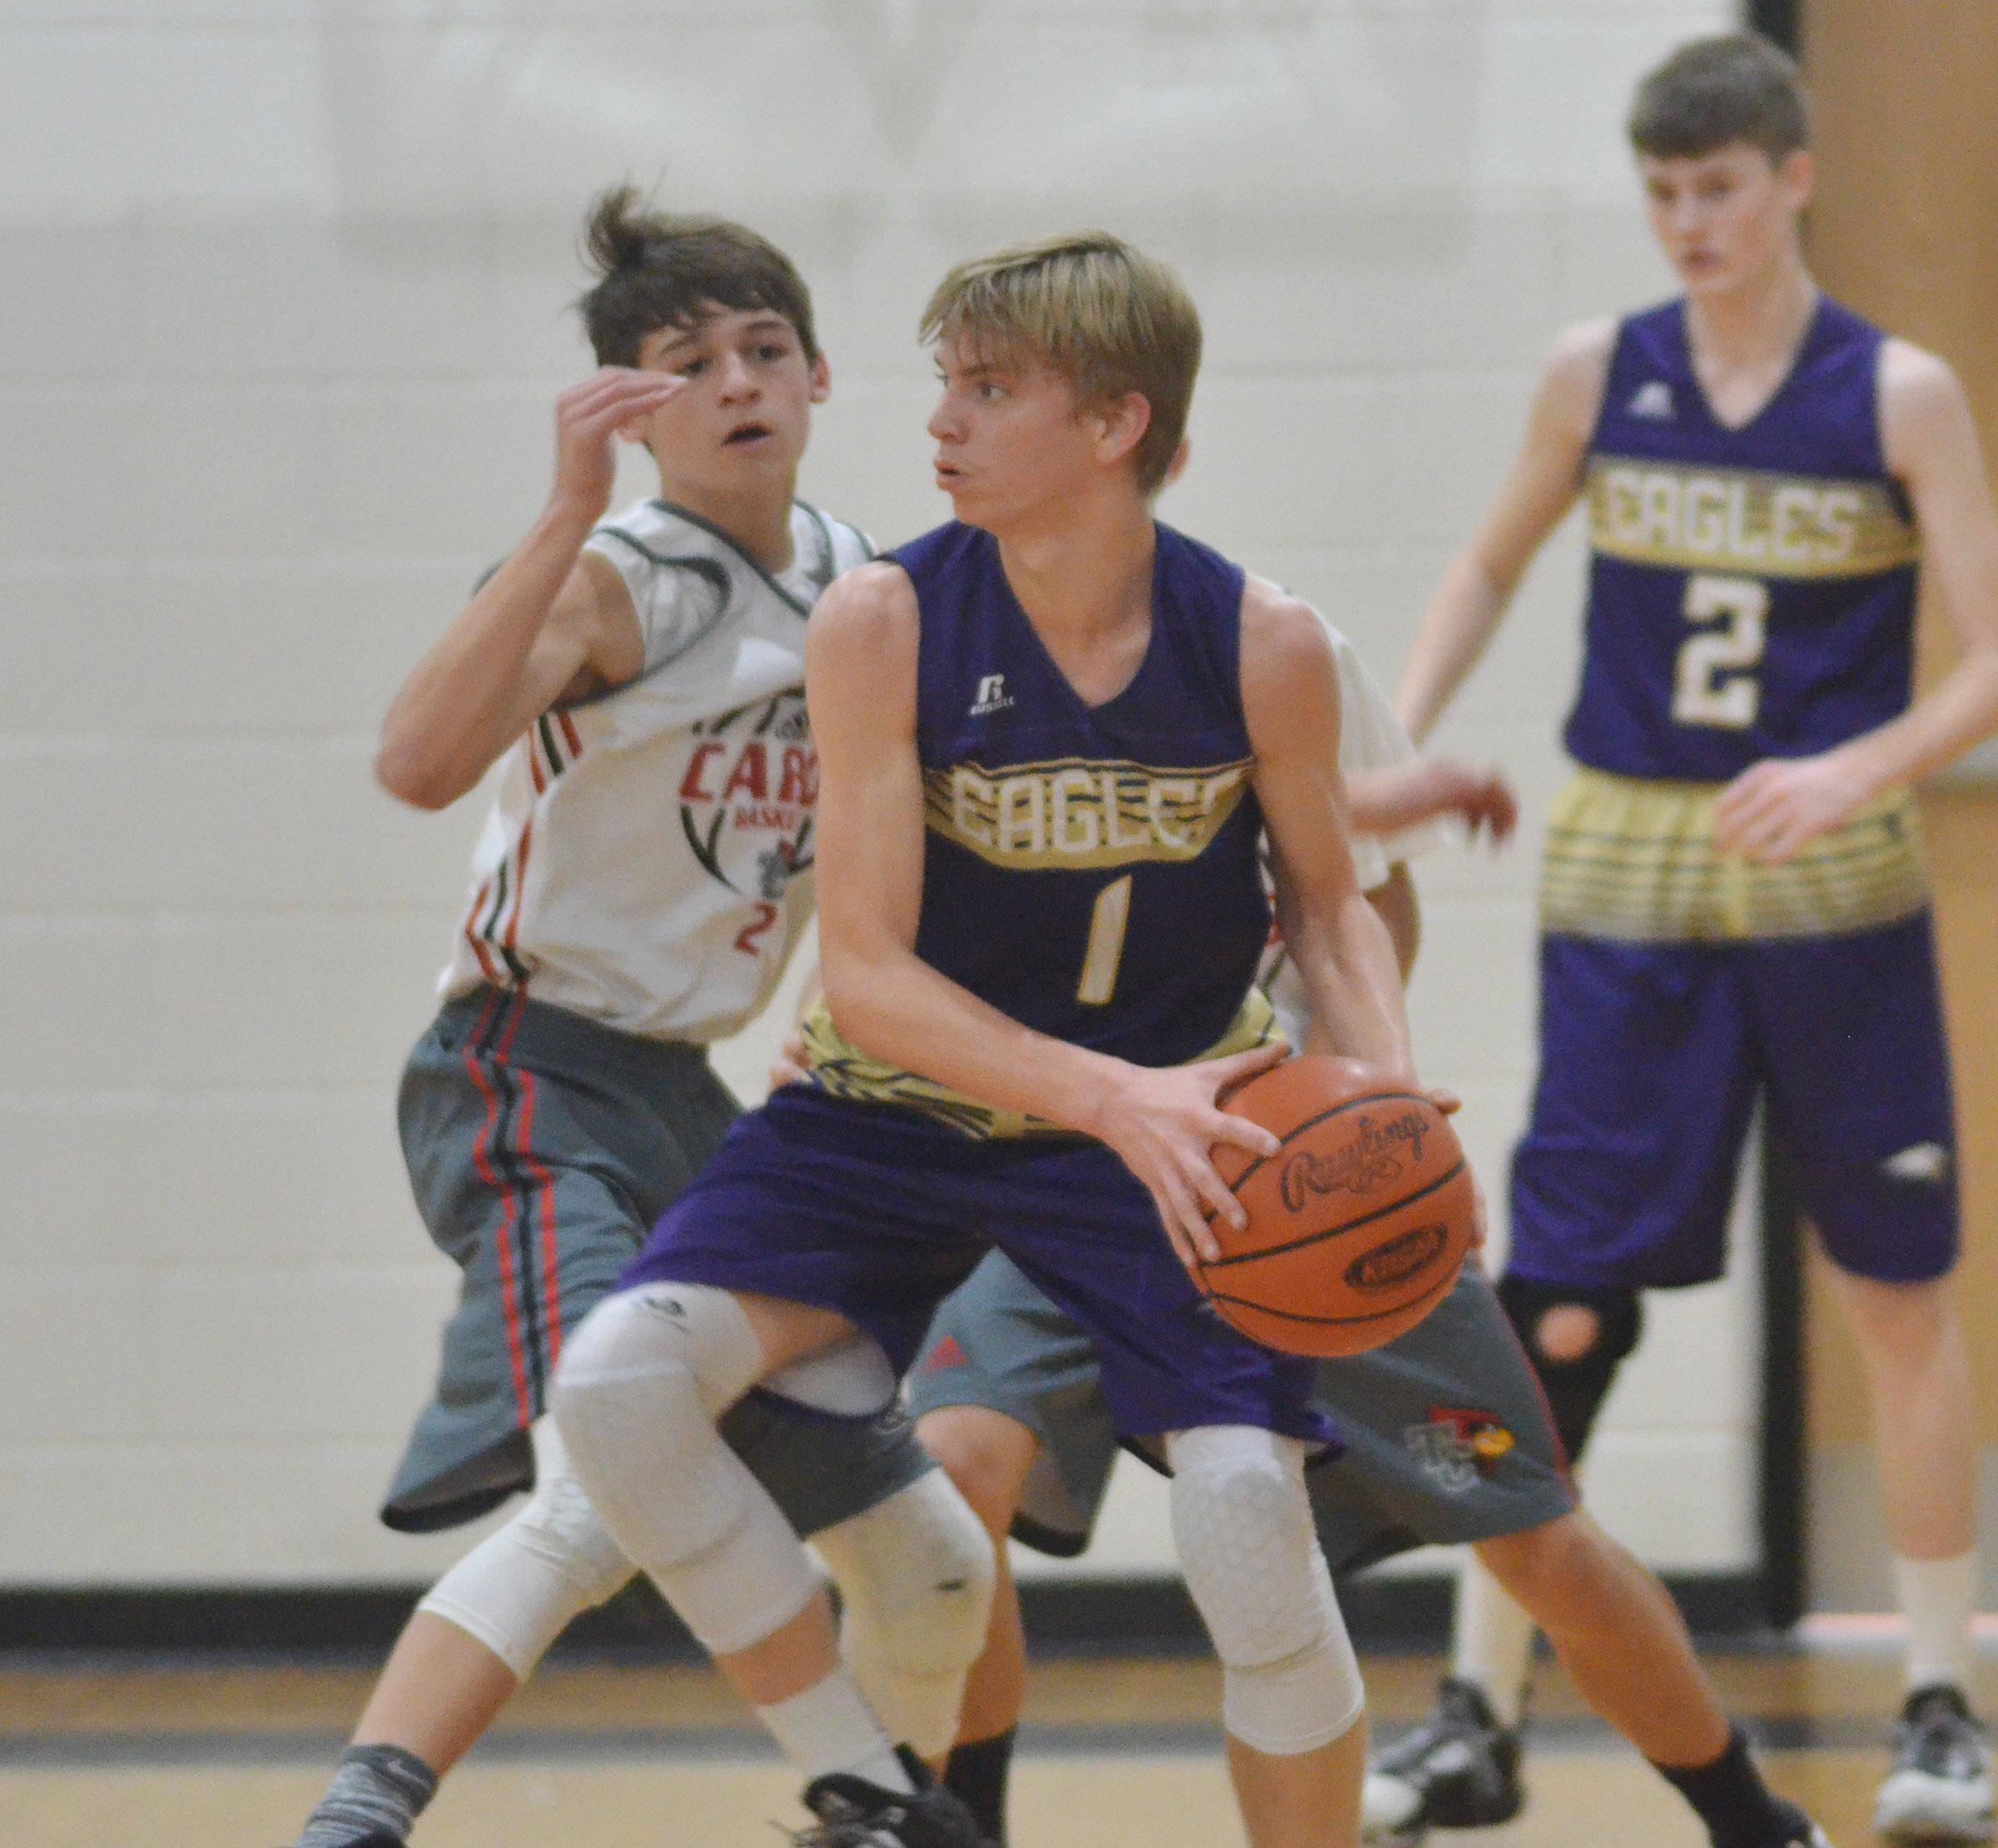 CMS eighth-grader Arren Hash protects the ball.